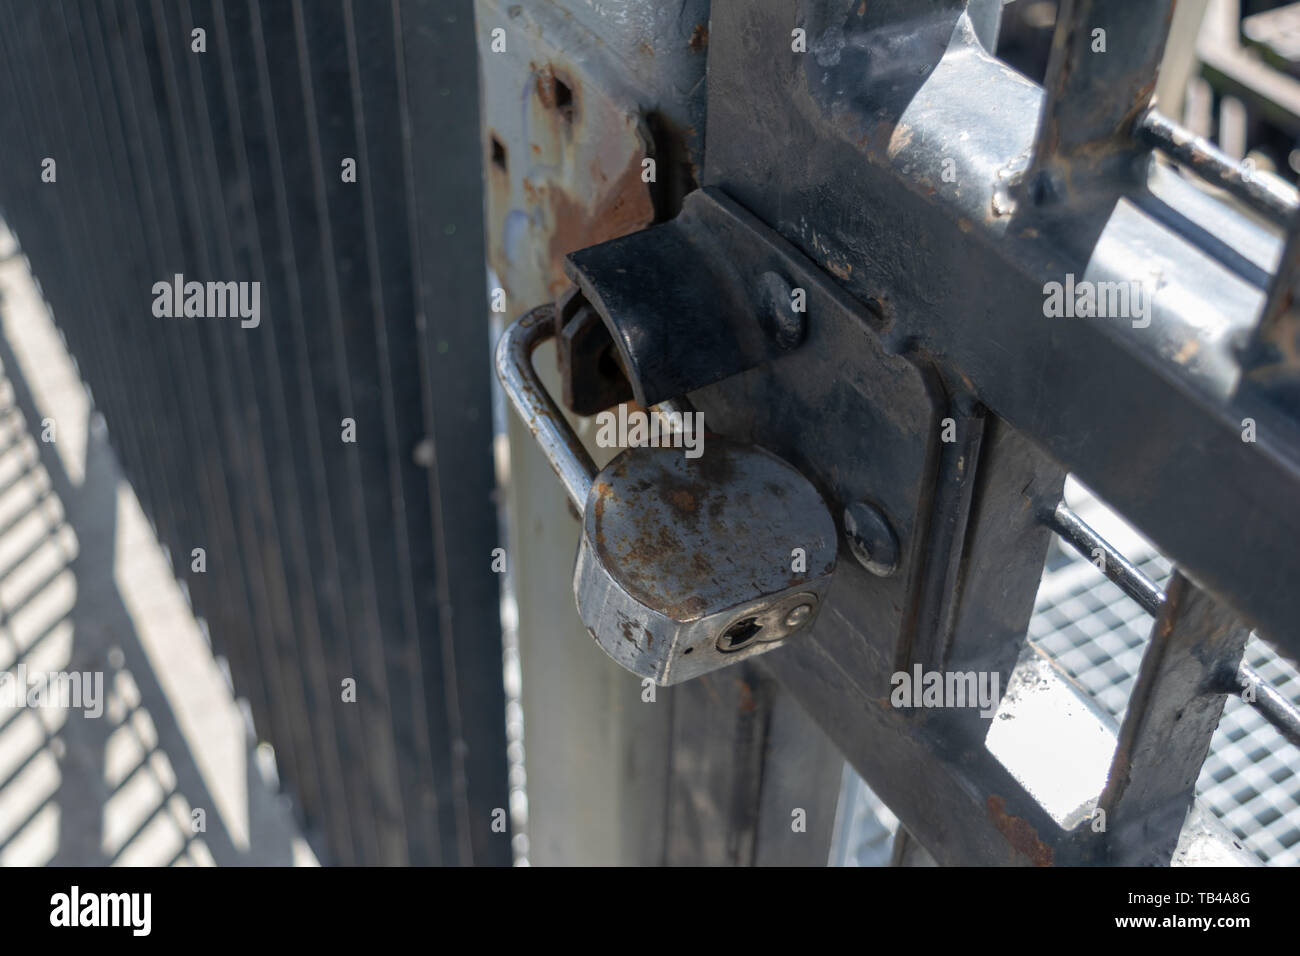 Old and rusty heavy duty pad lock securing aan iron gate, close-up - Stock Image